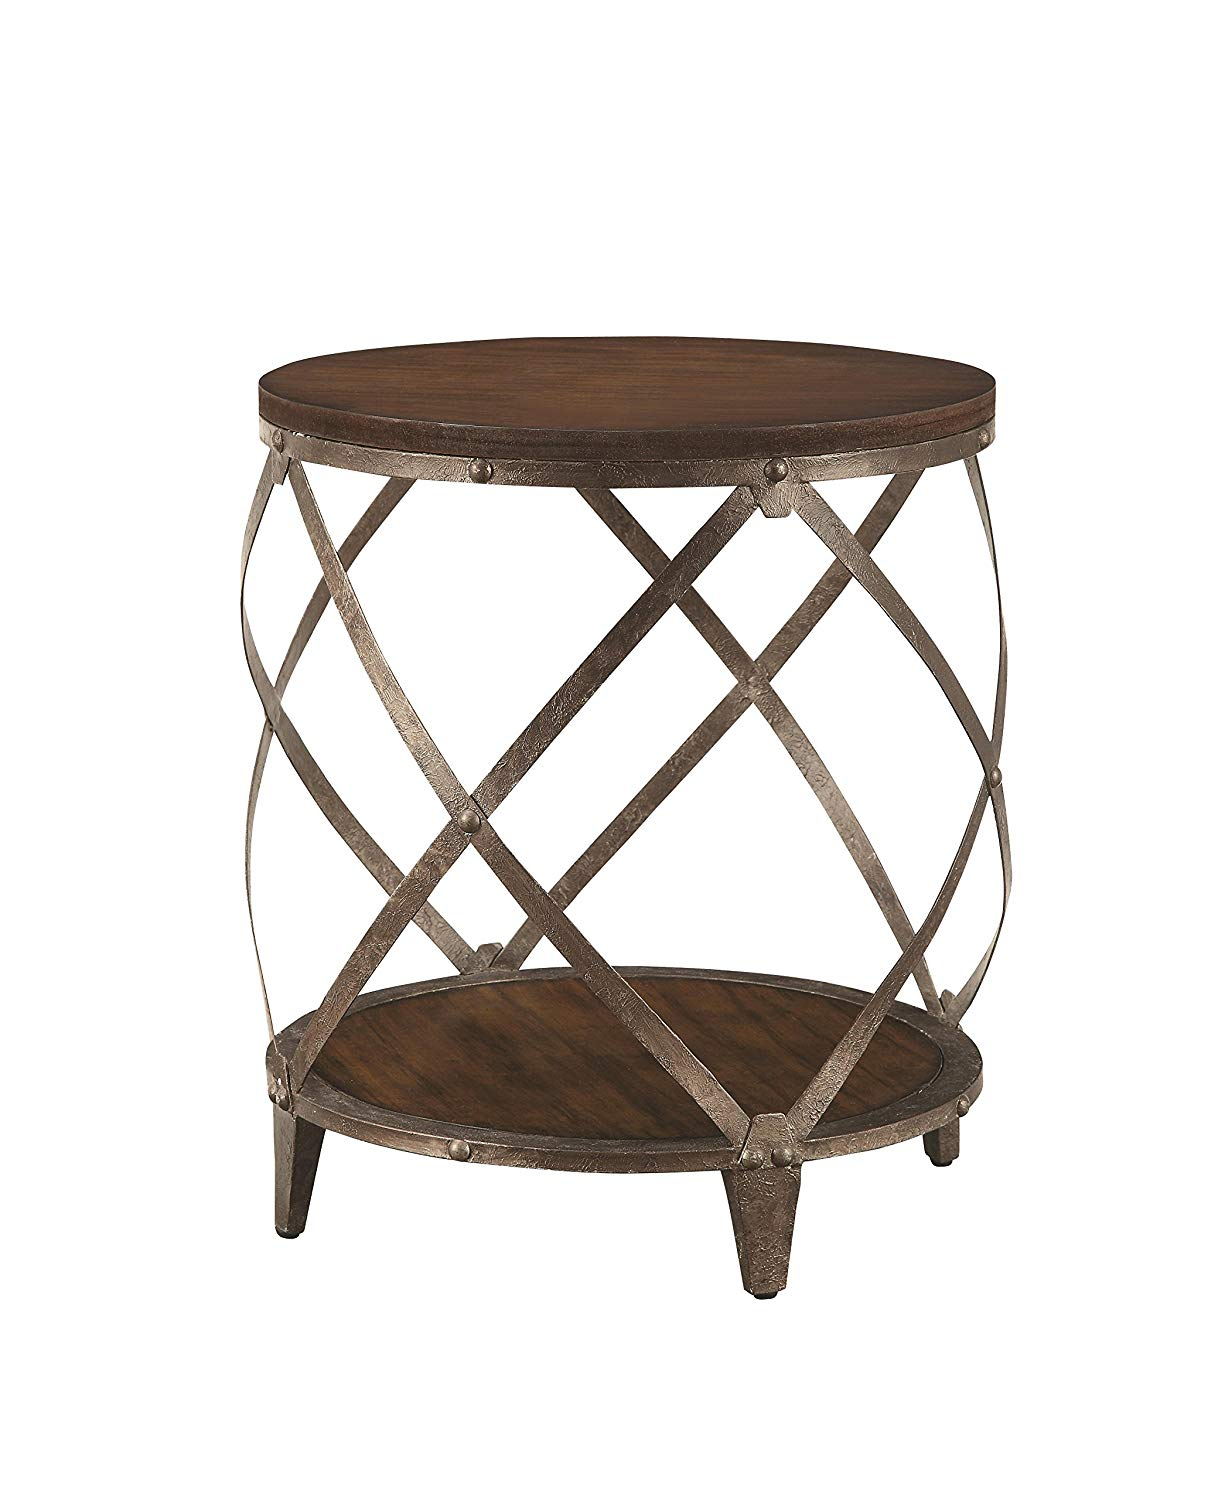 metal accent table with drum shape brown kitchen dining end tables bedside dresser round skirts target black lamp second hand kitchens pewter cool nesting diy plans rose gold side